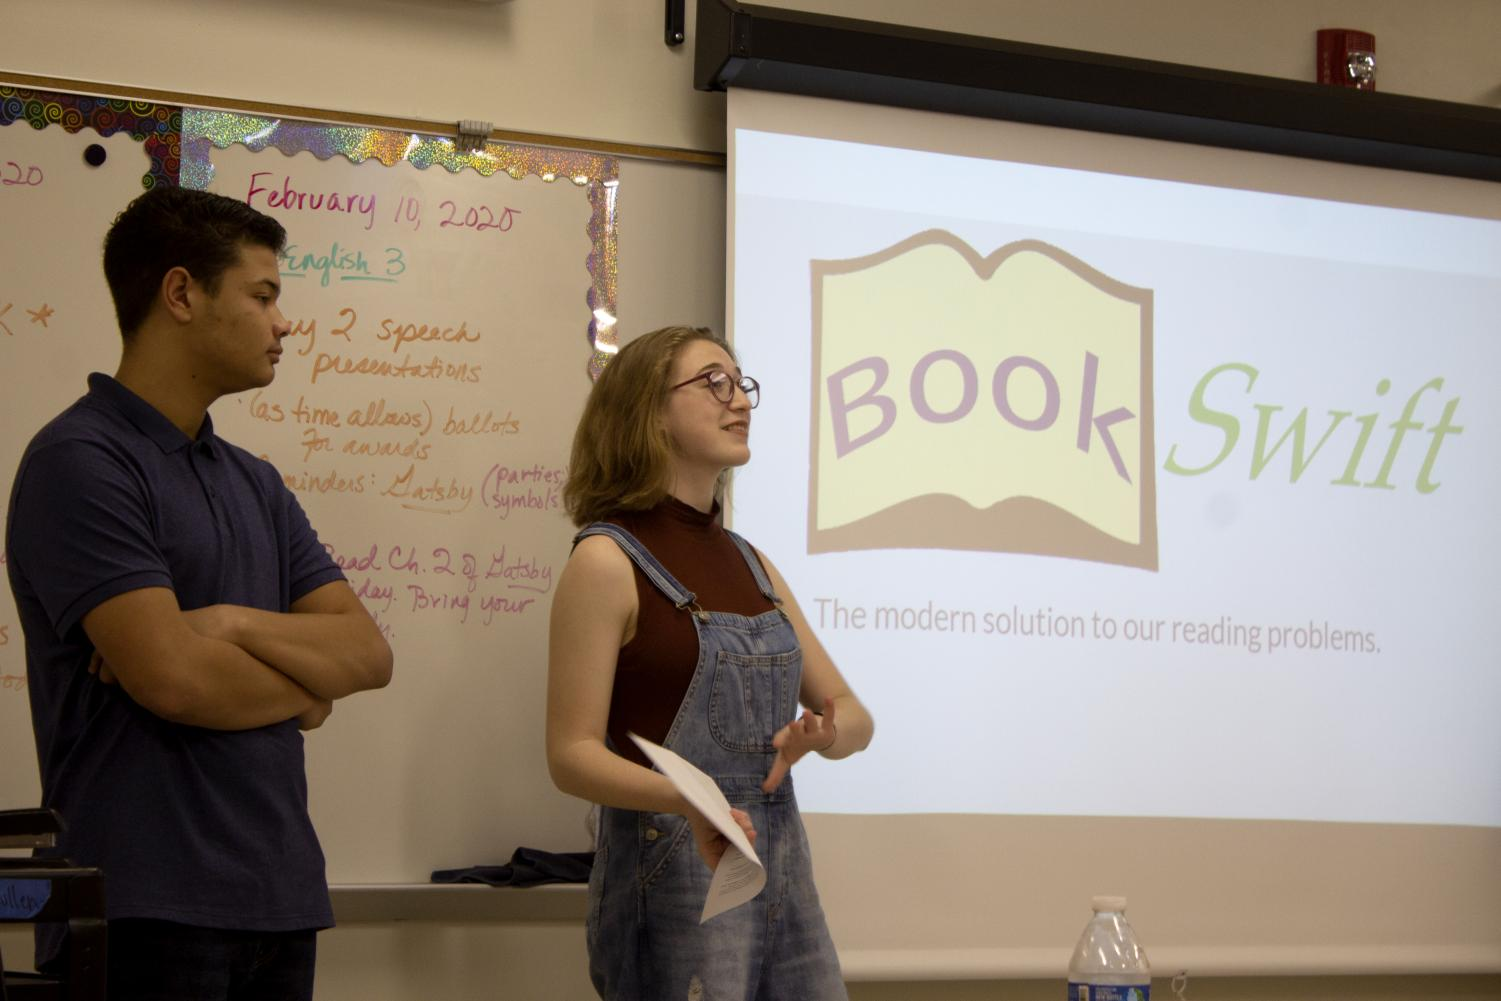 Sophie+Steinhauser+%2722+and+Emerson+Heard+%2722+present+their+product+for+the+sharks.+Their+product+was+a+library+book+delivery+system+called+Book+Swift.